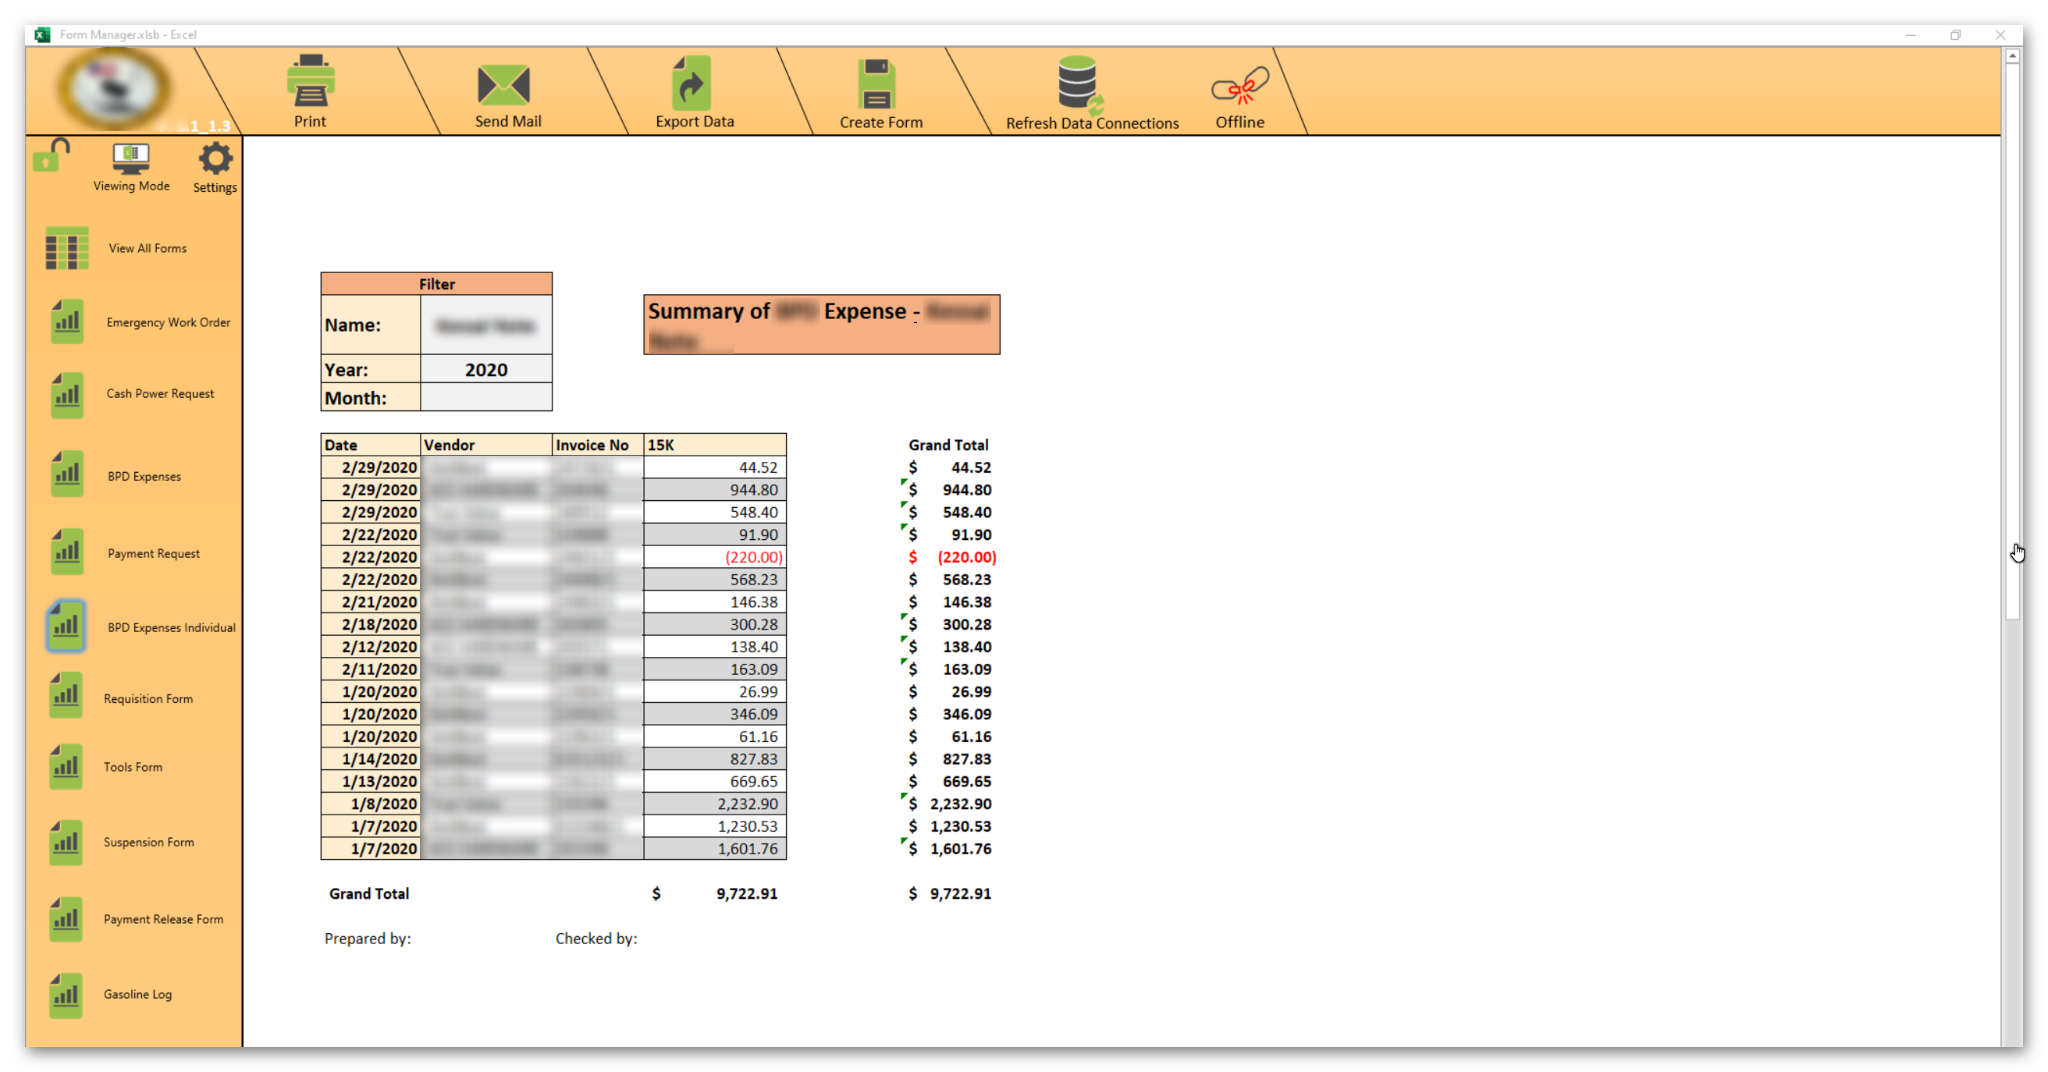 Excel Costs Report